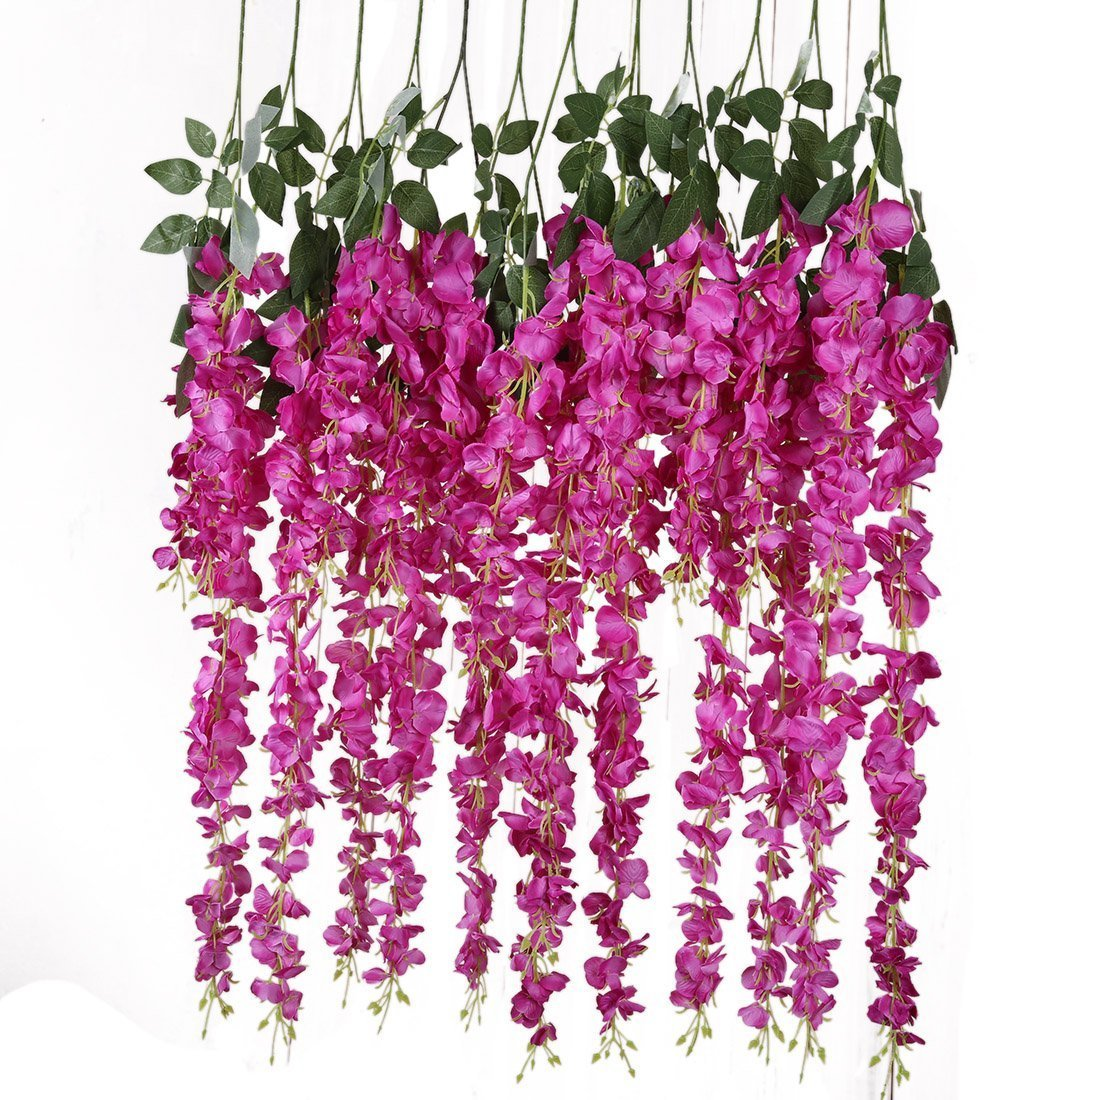 Artificial Silk Wisteria Vine Rattan Garland Fake Hanging Flower Wedding Party Home Garden Outdoor Ceremony Floral Decor,3.18 Feet, 6 Pieces (Rose Red-2)